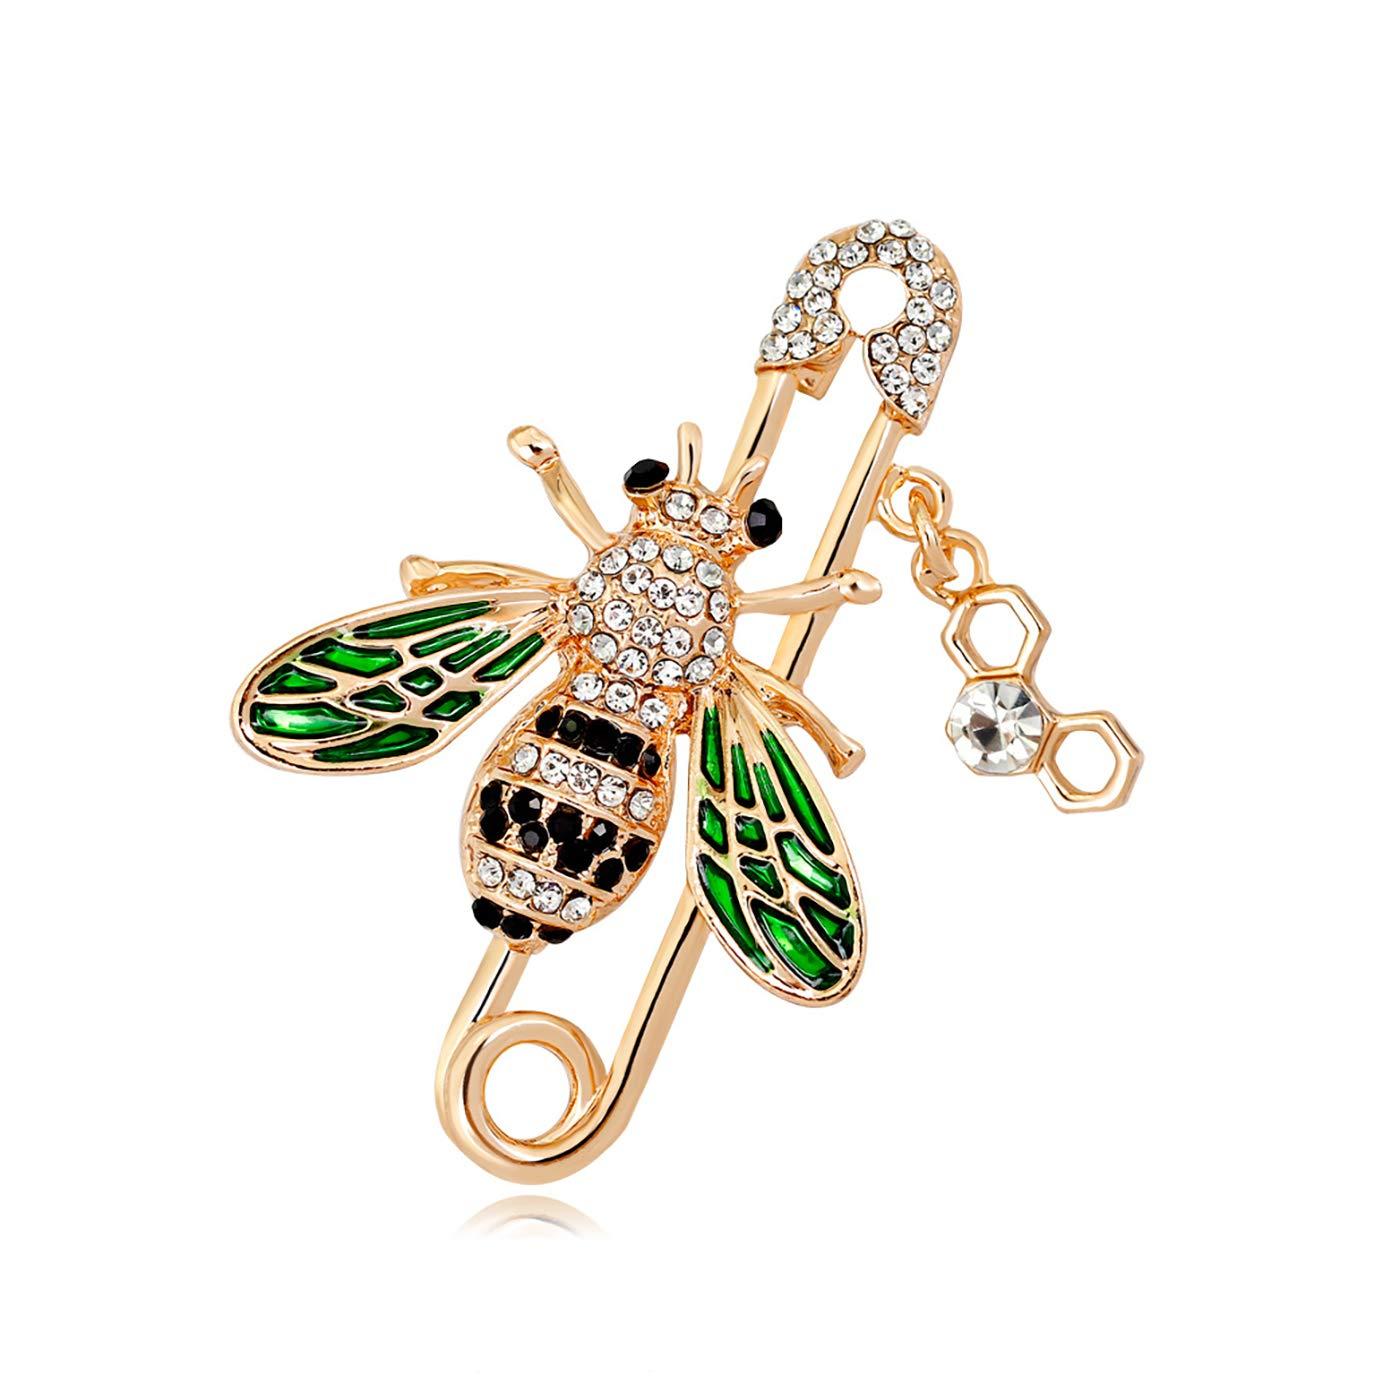 YOQUCOL Cute Honeybee Bee Brooch Pin Cubic Zirconia CZ Crystal Enamel Golden Tone for Women AXS010